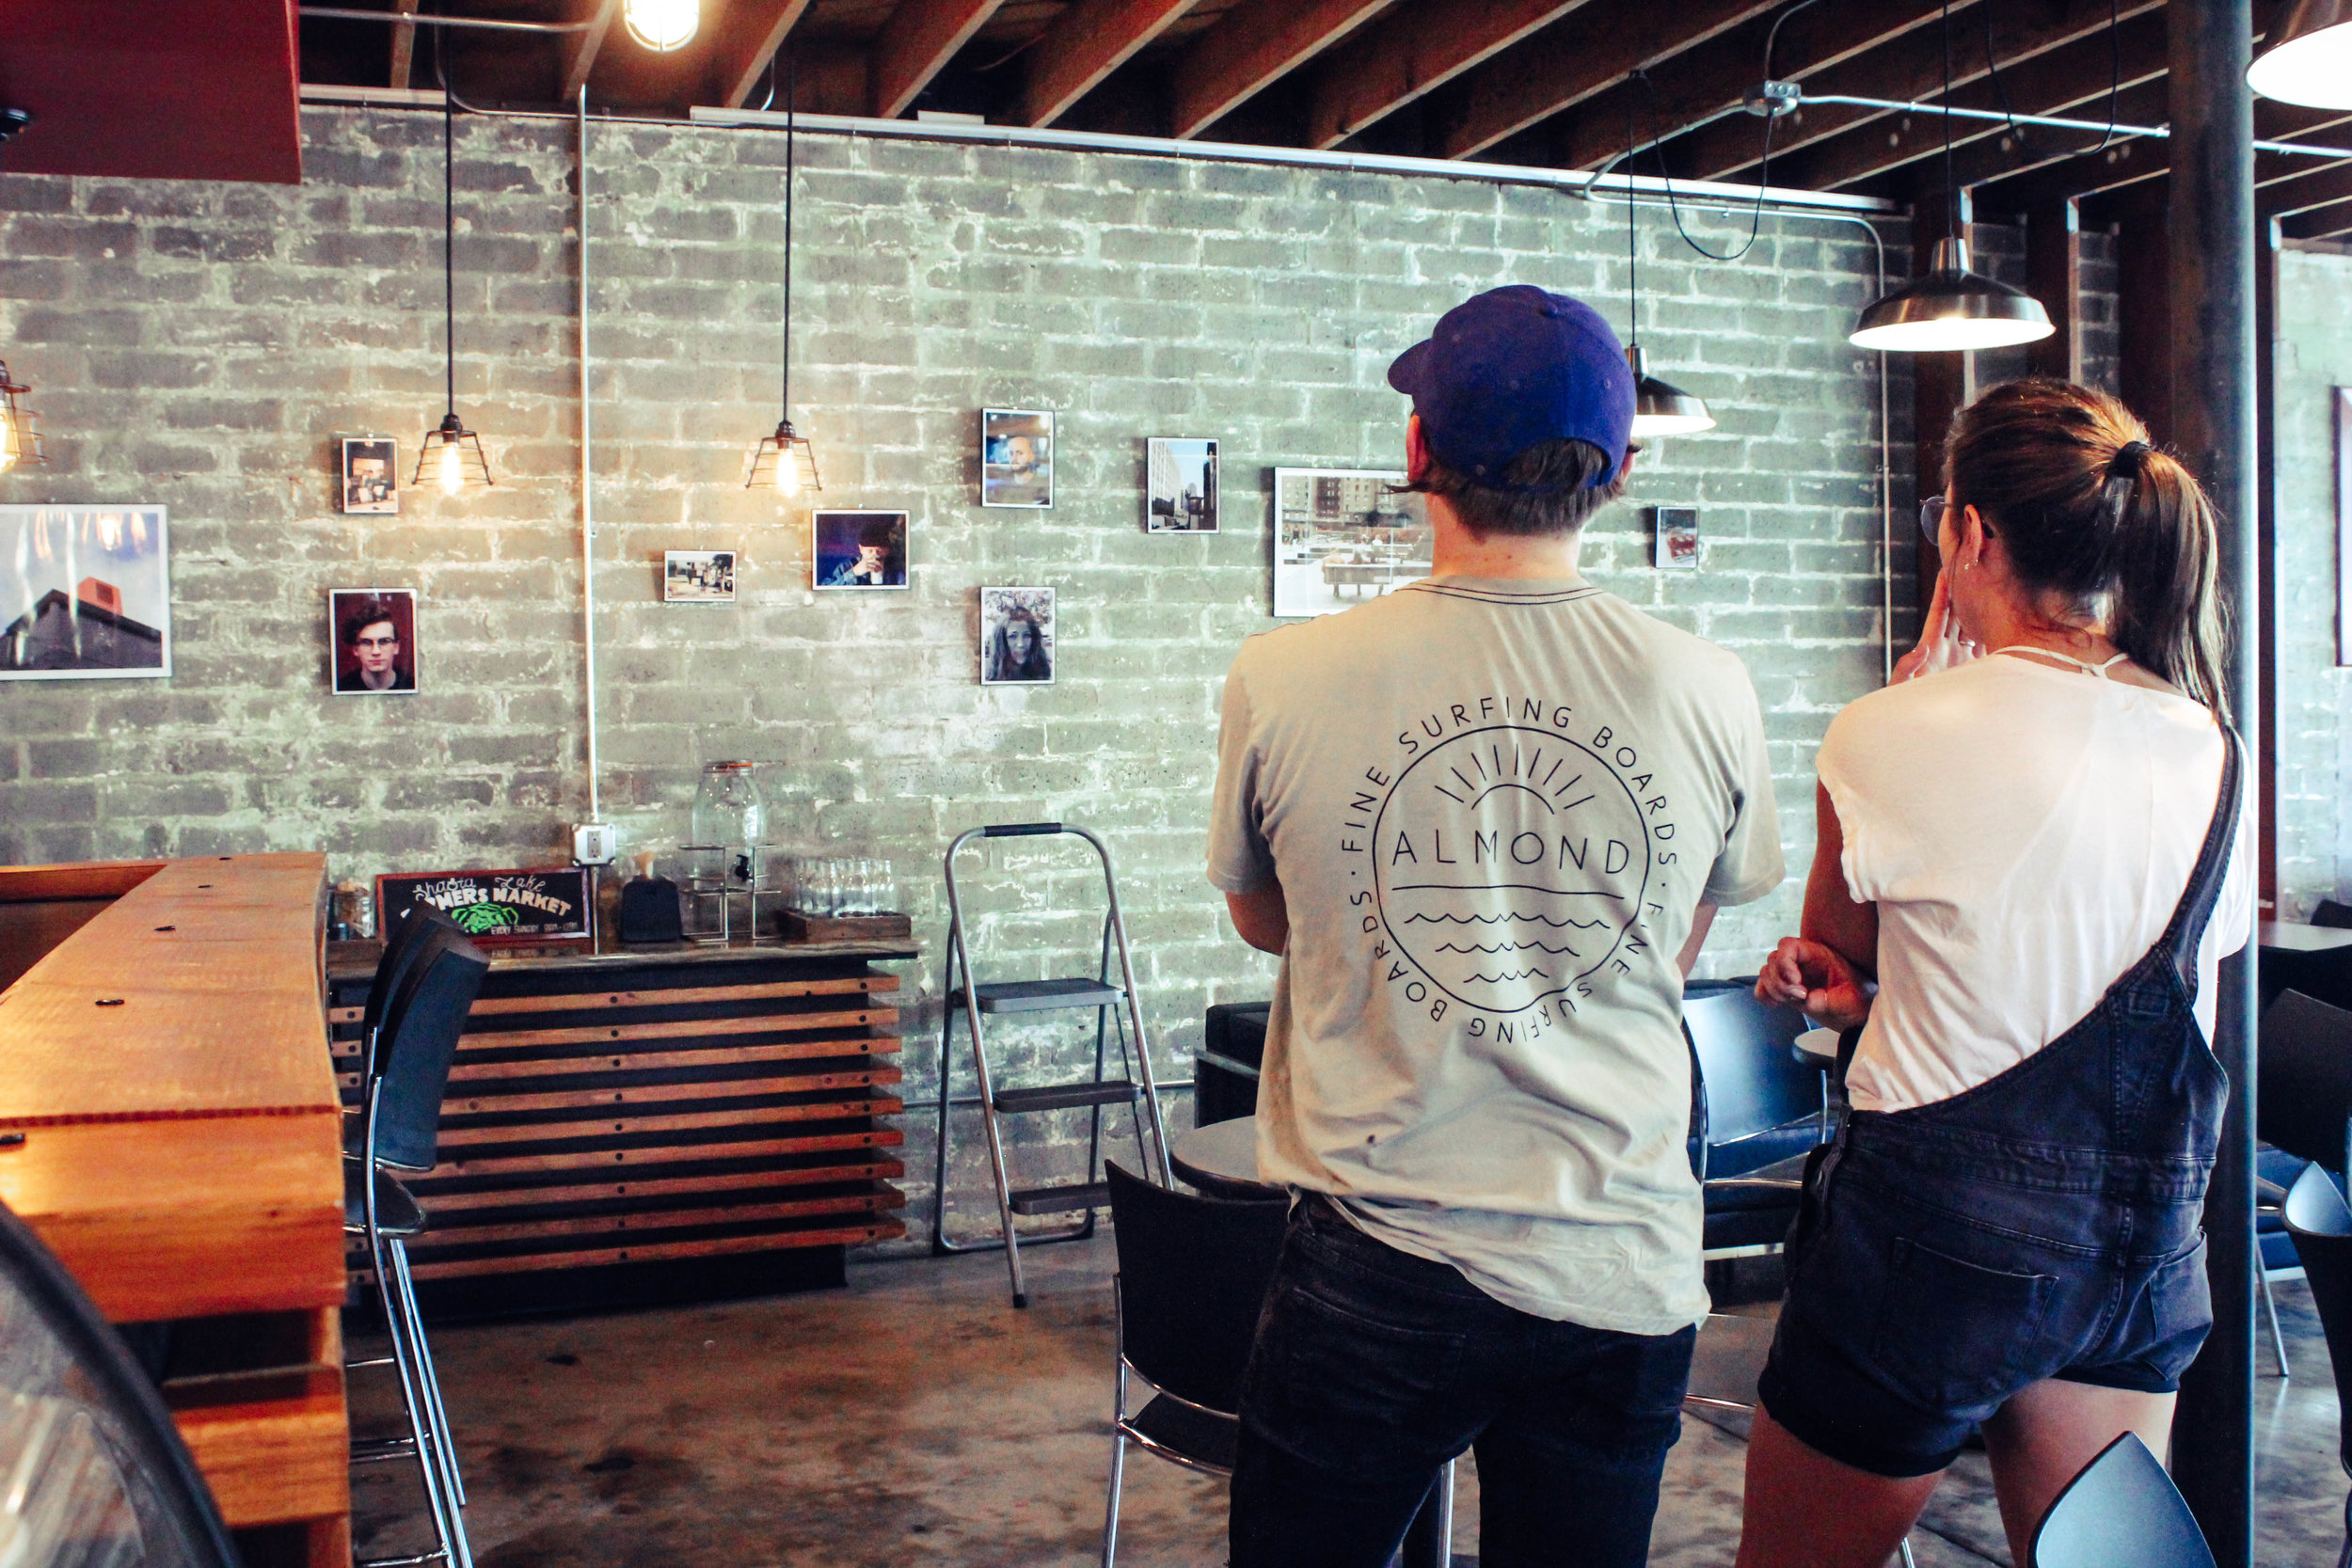 Its simple, we love art and want to see our local art culture grow! We do a monthly art rotation in the main coffee house space of Heritage(roaster just north of Redding) and special art events throughout the year!